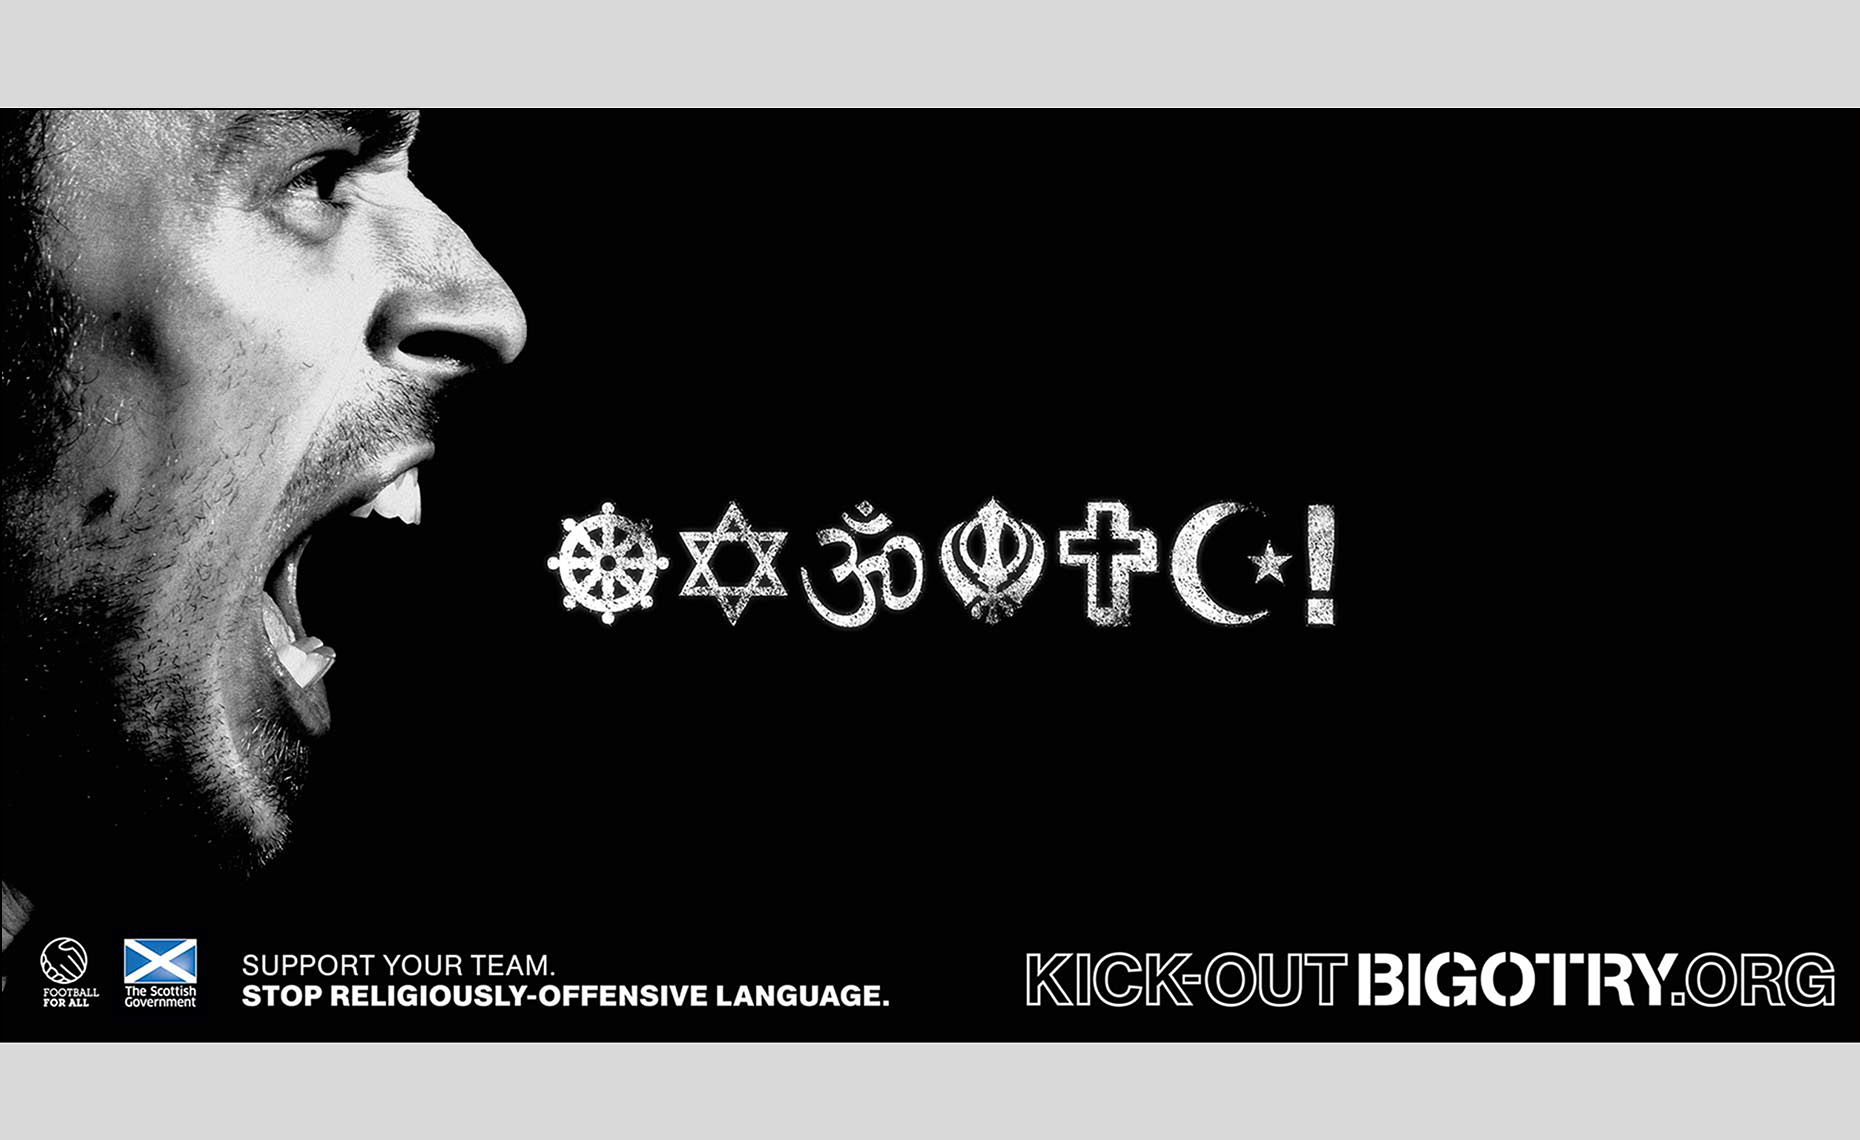 19 Kick Out Bigotry Scotland ©Paul Hampton Photographer Glasgow